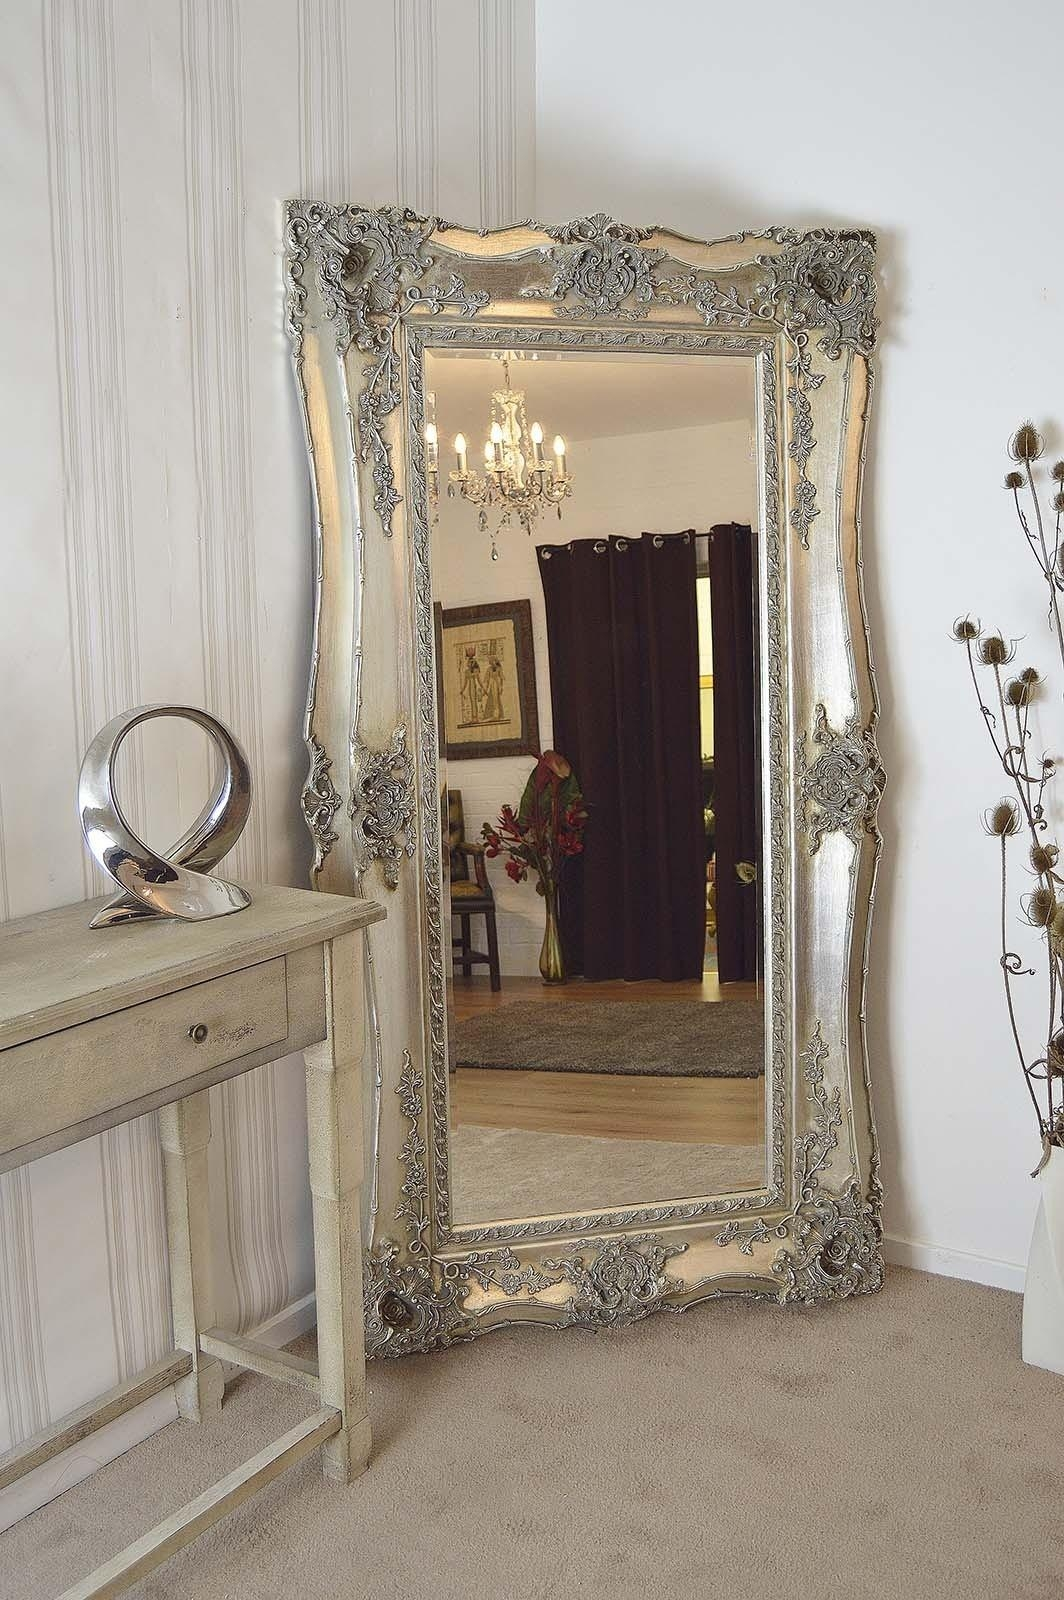 Extra Large Ornate Floor Mirror | Floor Decoration With Ornate Mirrors For Sale (Image 6 of 20)